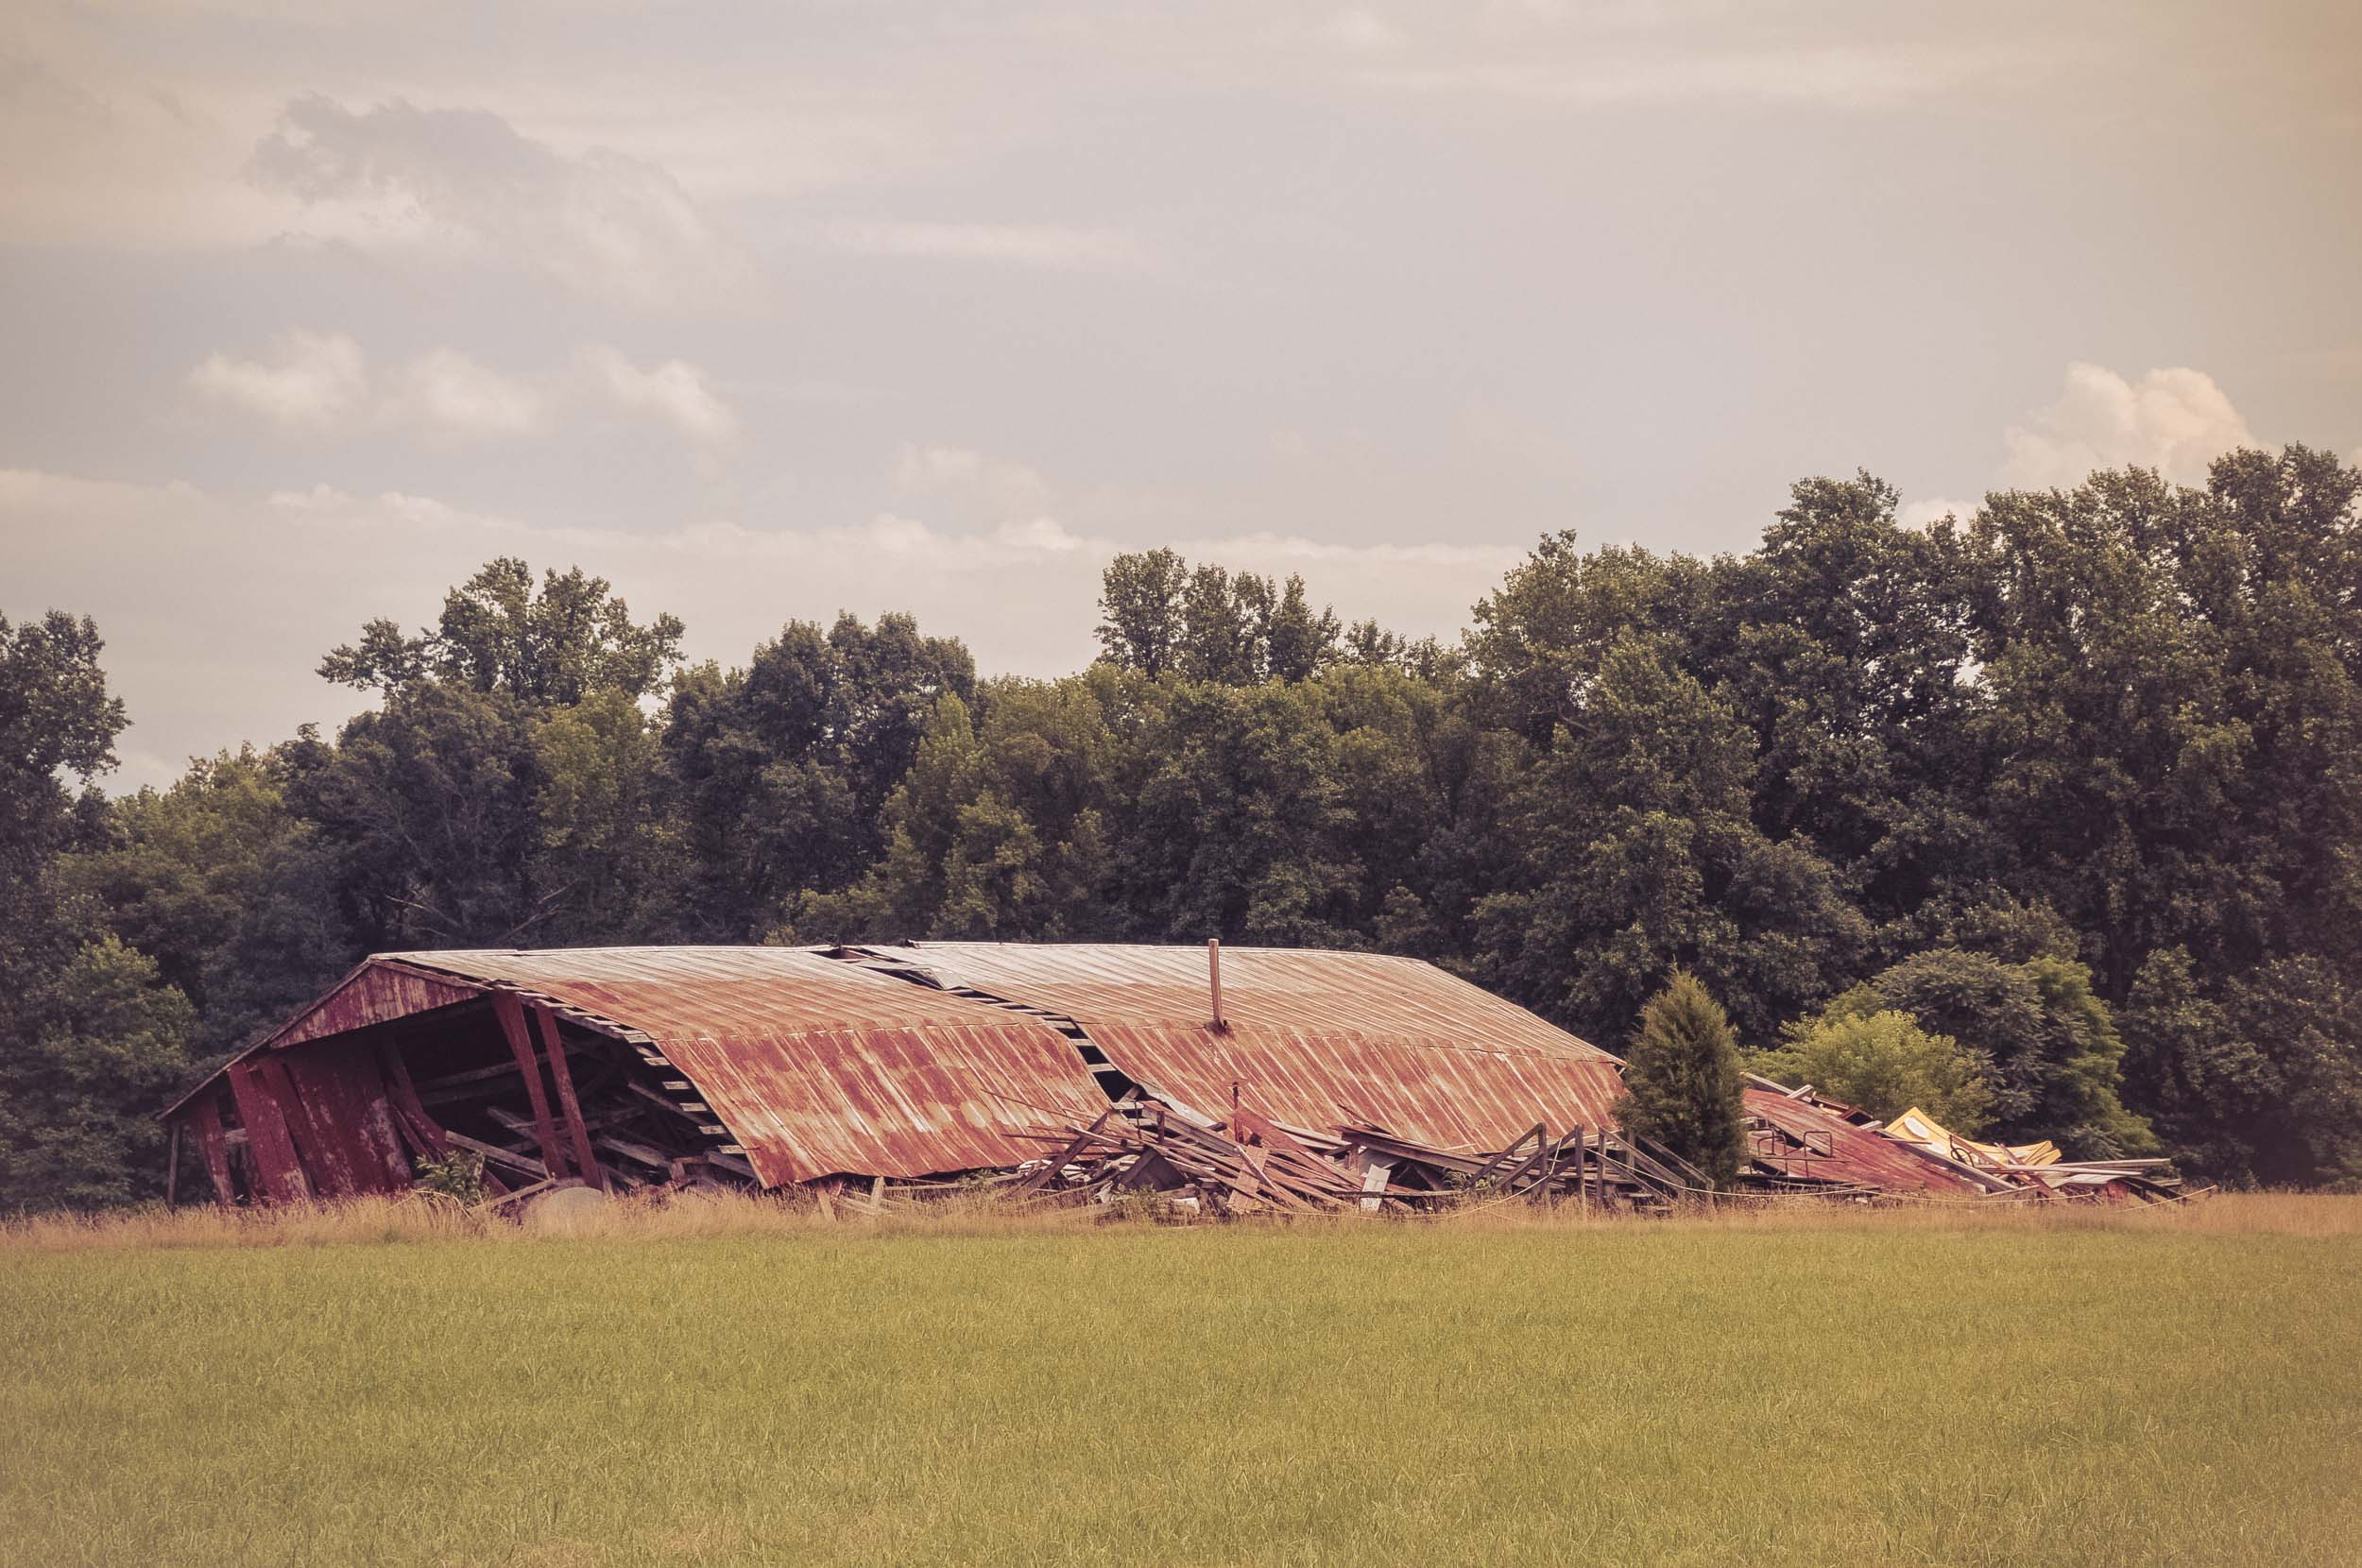 Collapsed Barn Photo: Rose Anderson, June 2018